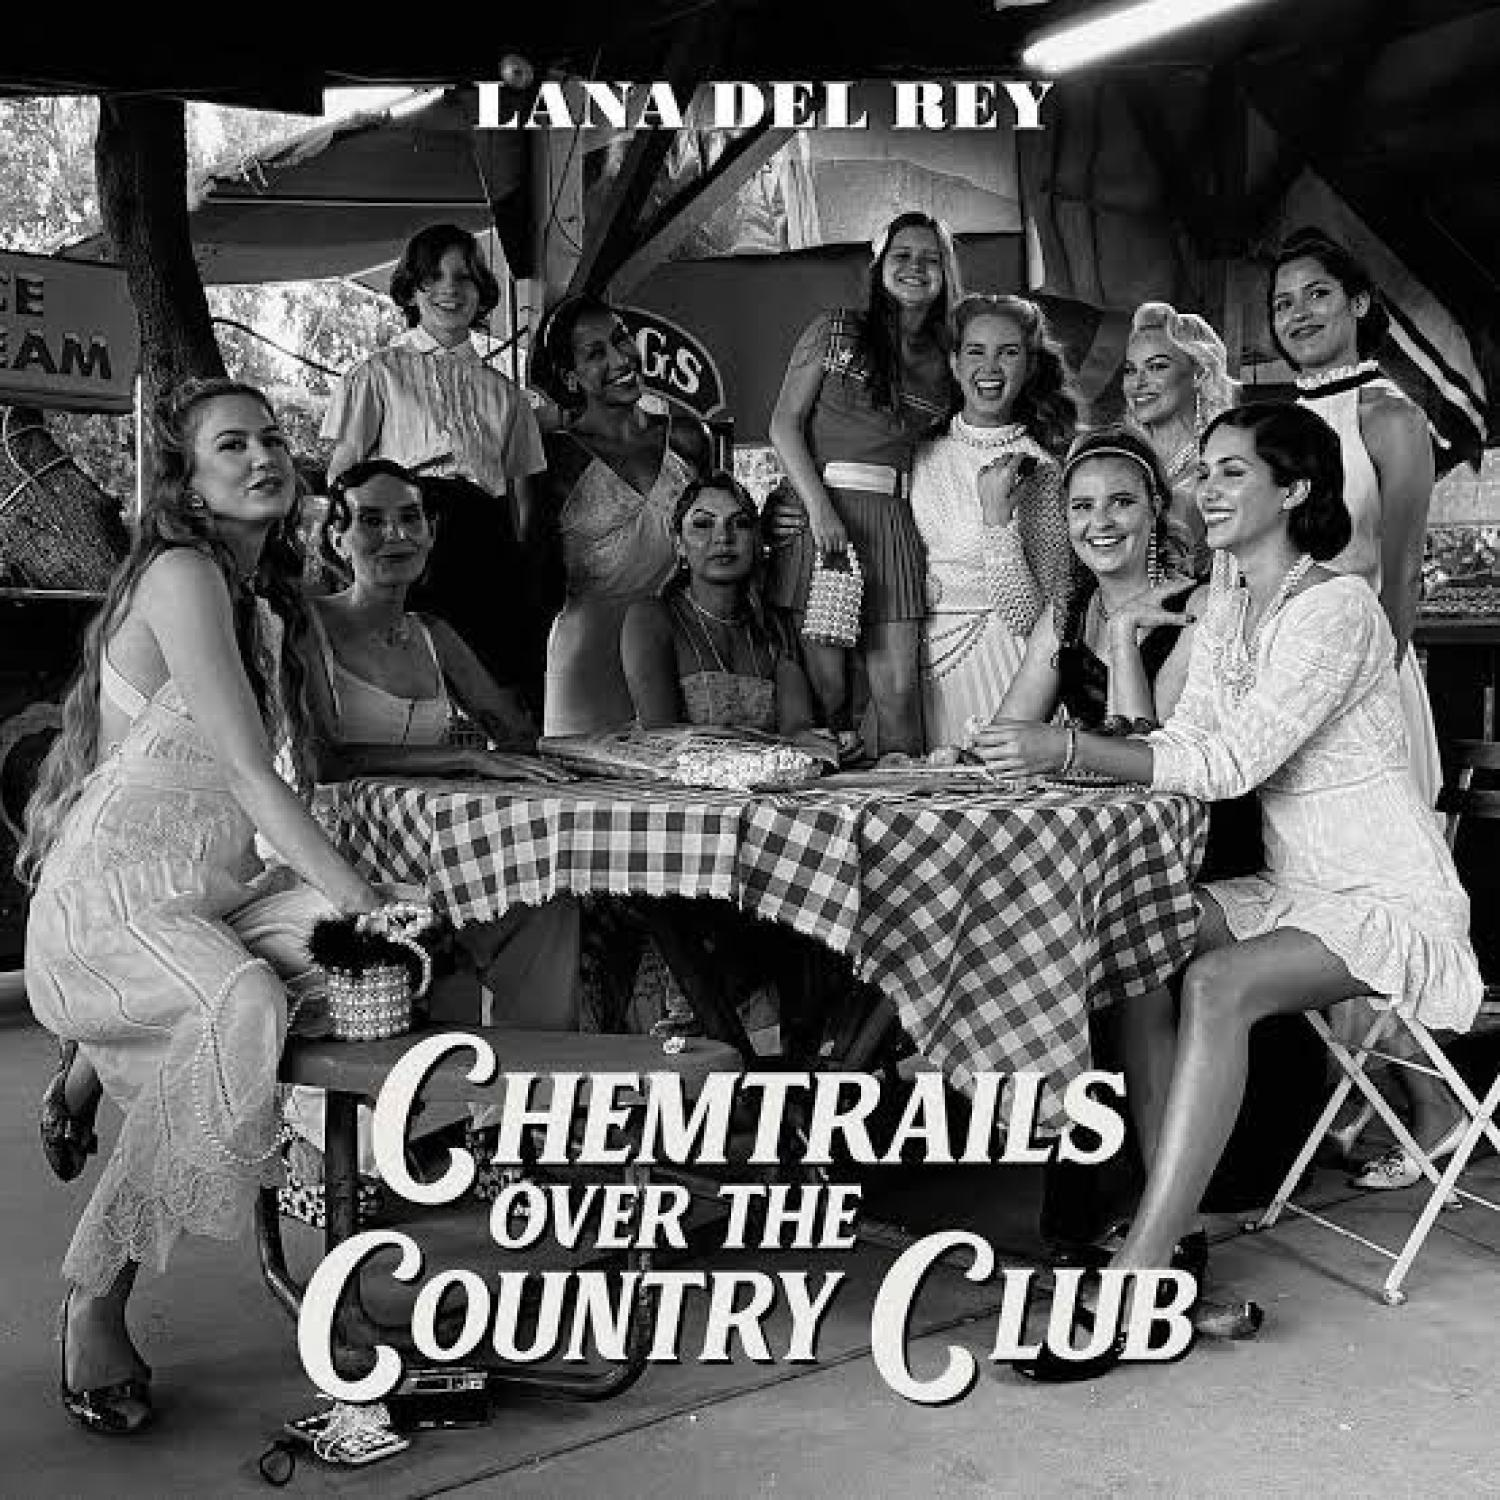 DOWNLOAD ALBUM: LANA DEL REY – Chemtrails Over The Country Club ZIP Full Album MP3